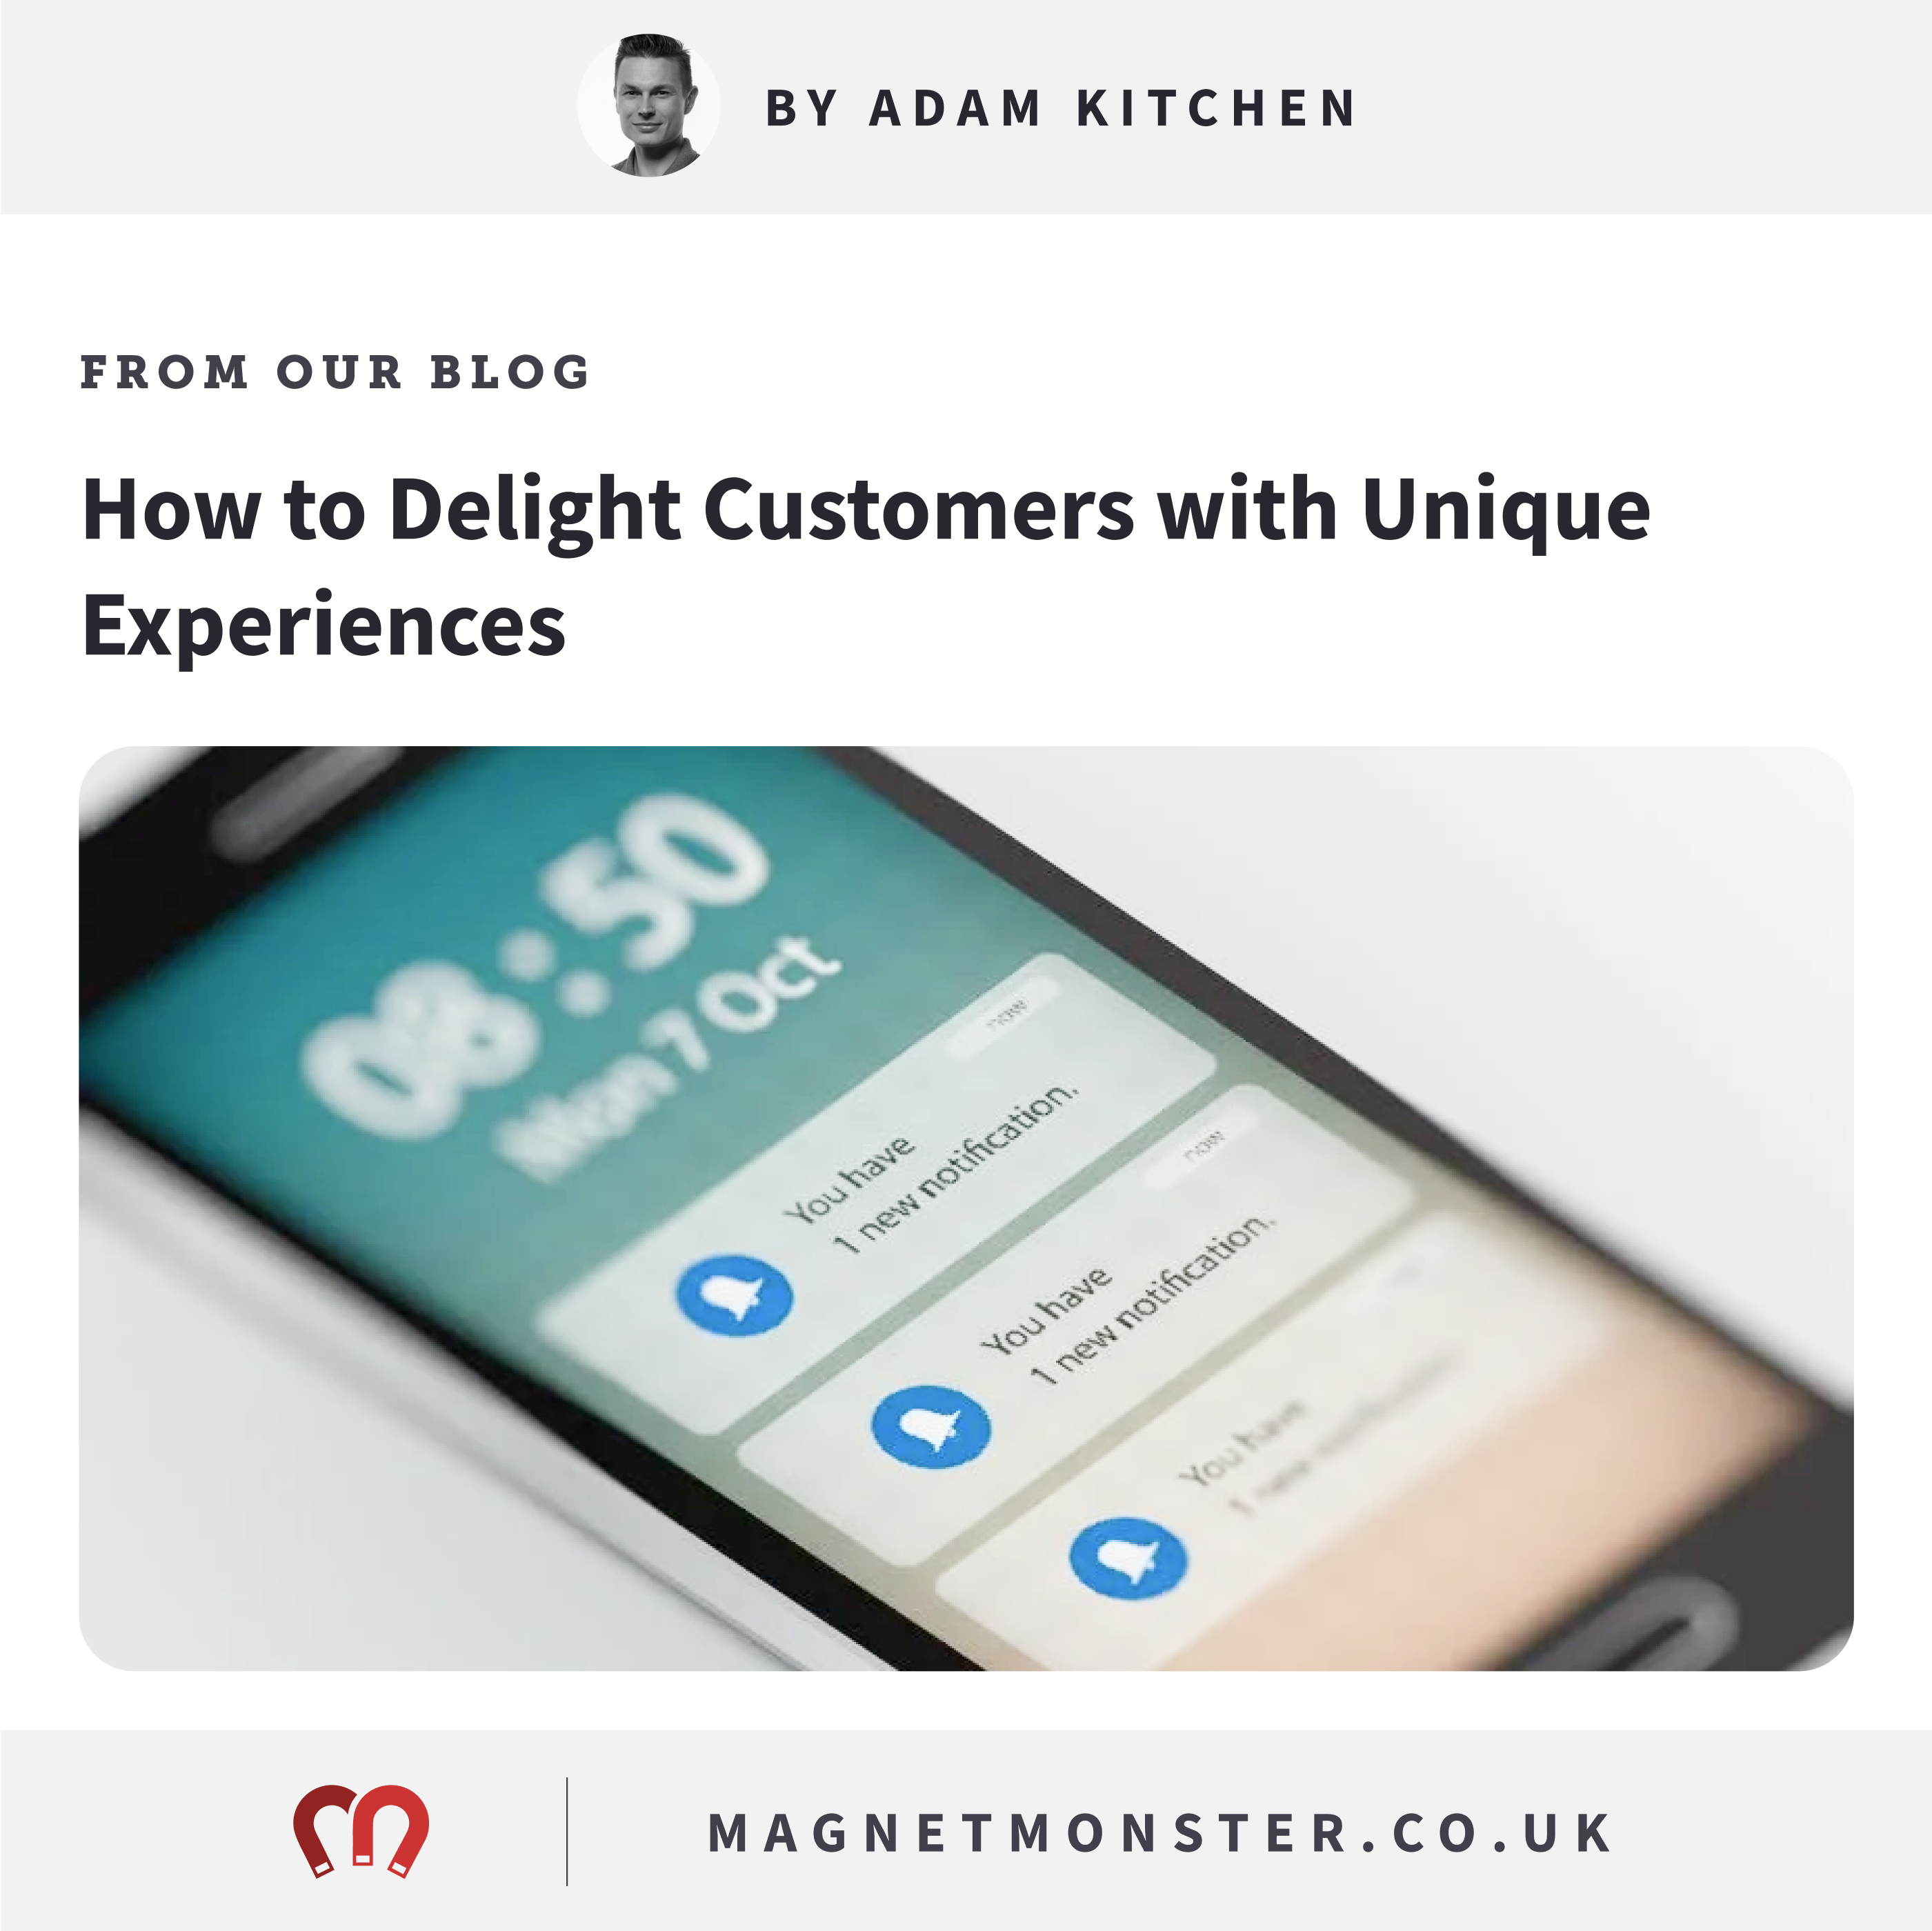 How to Delight Customers with Unique Experiences